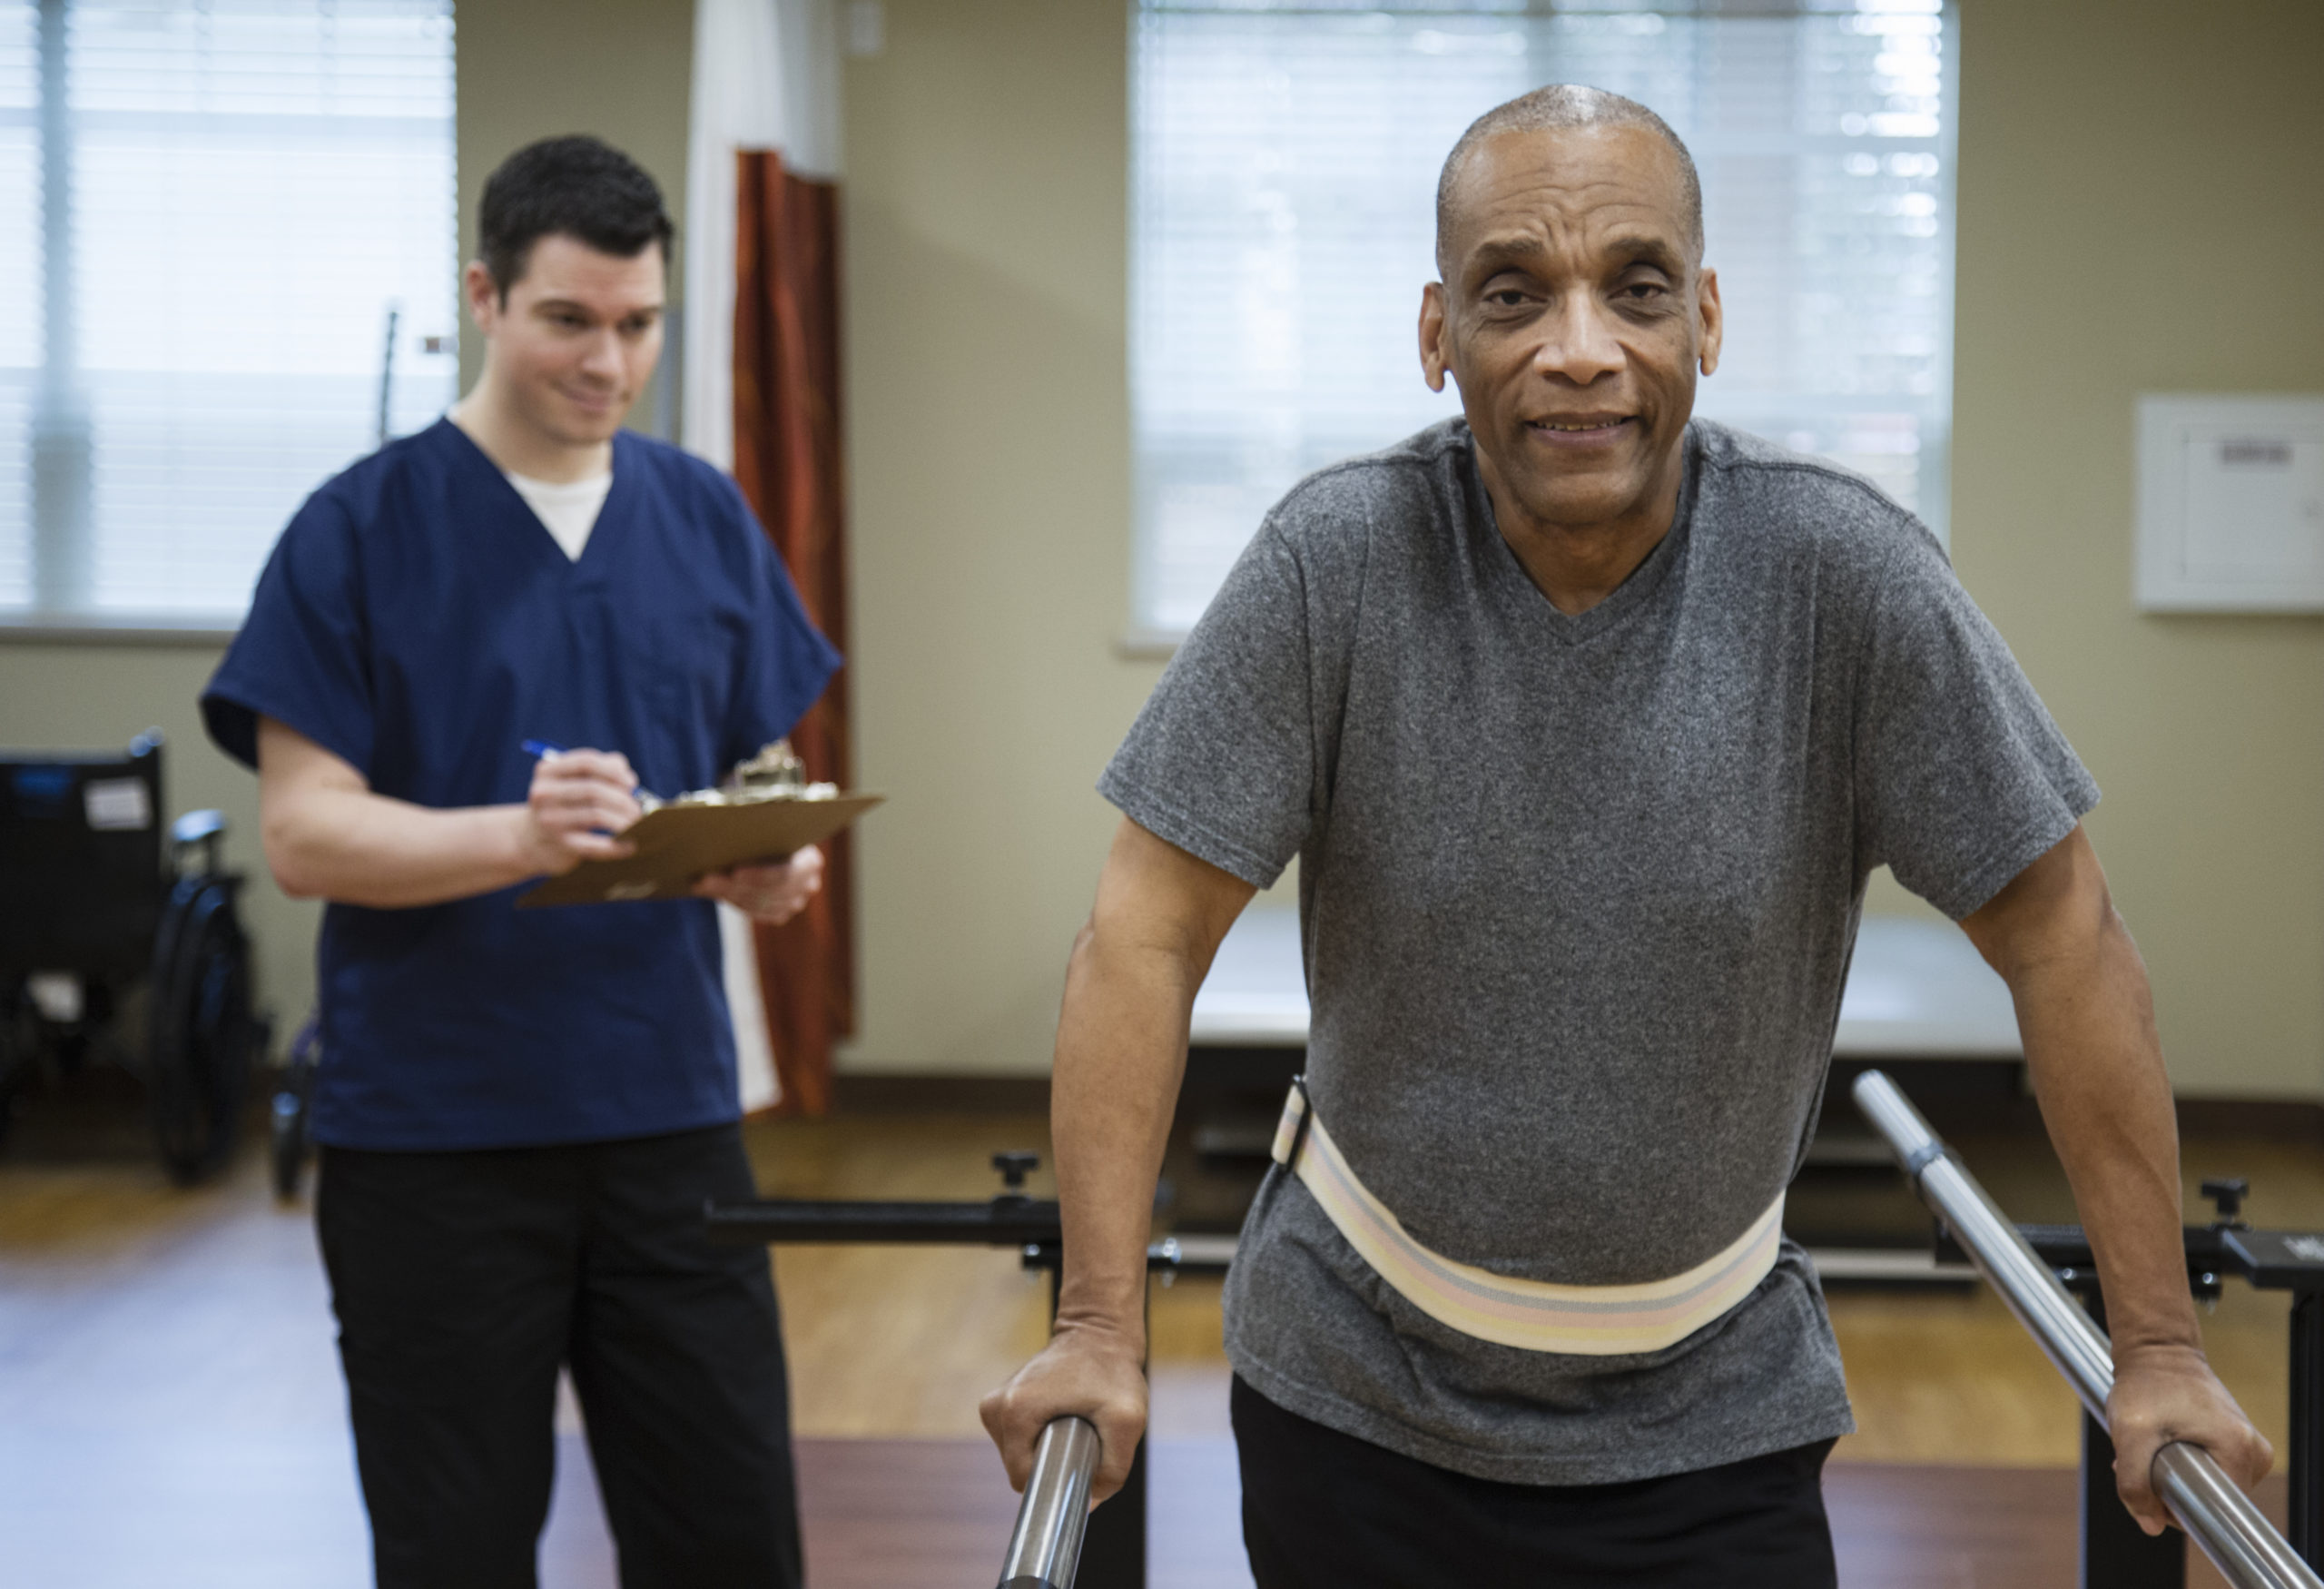 Patient having physical therapy in hospital